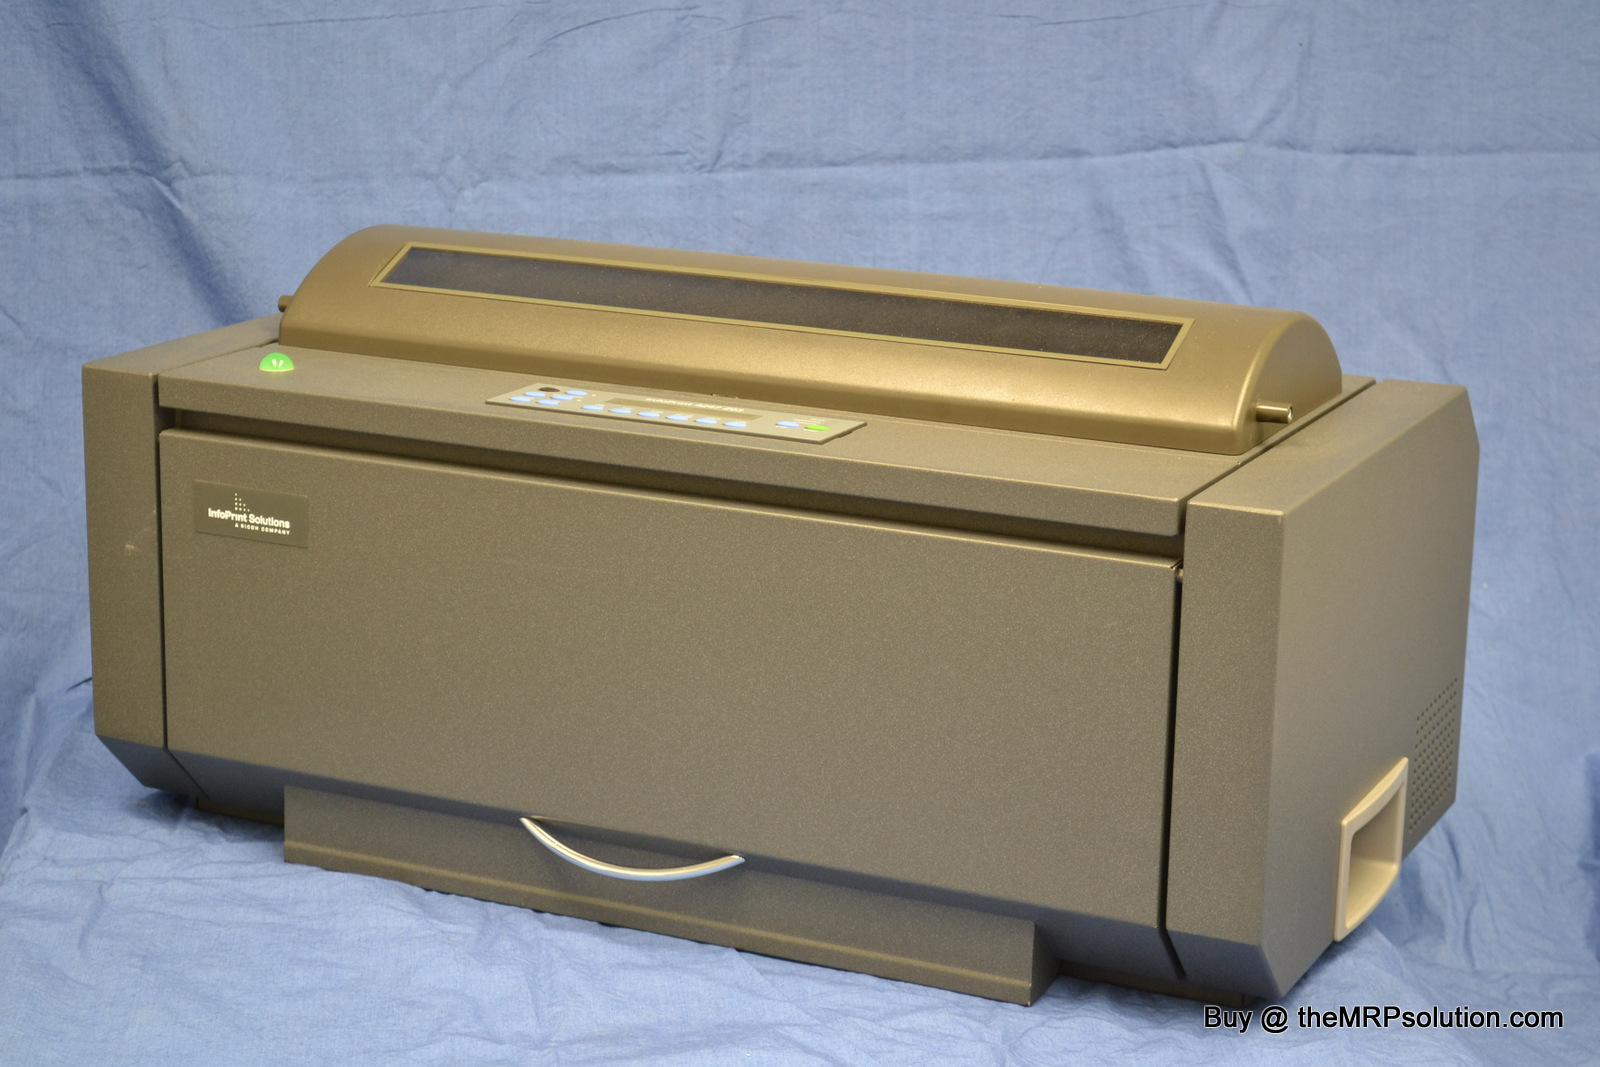 IBM 4247-Z03 PRINTER, SERIAL MATRIX, 4247-Z03 Refurbished